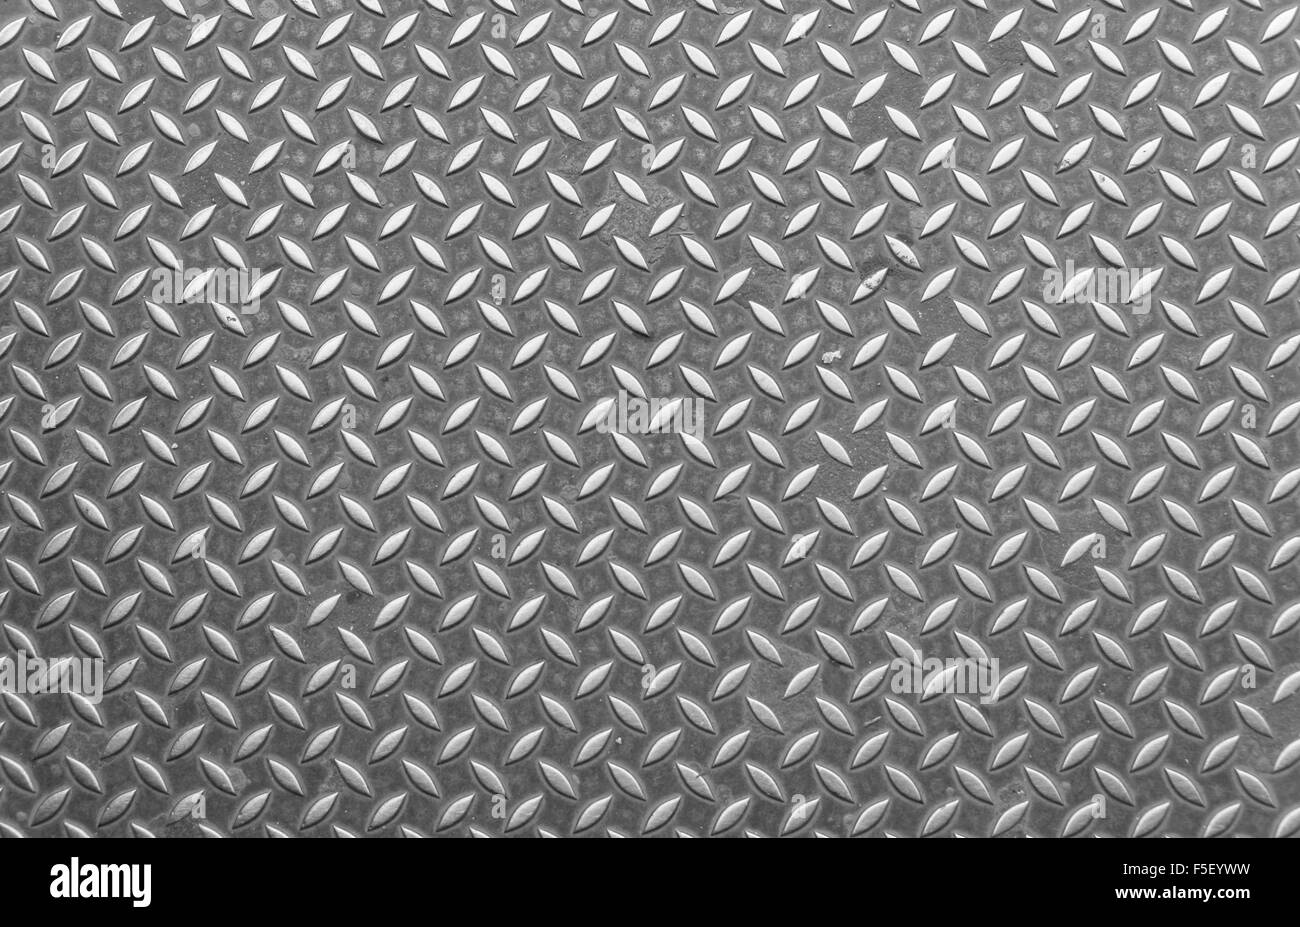 Metal sheet, surface detail, rhombuses - Stock Image